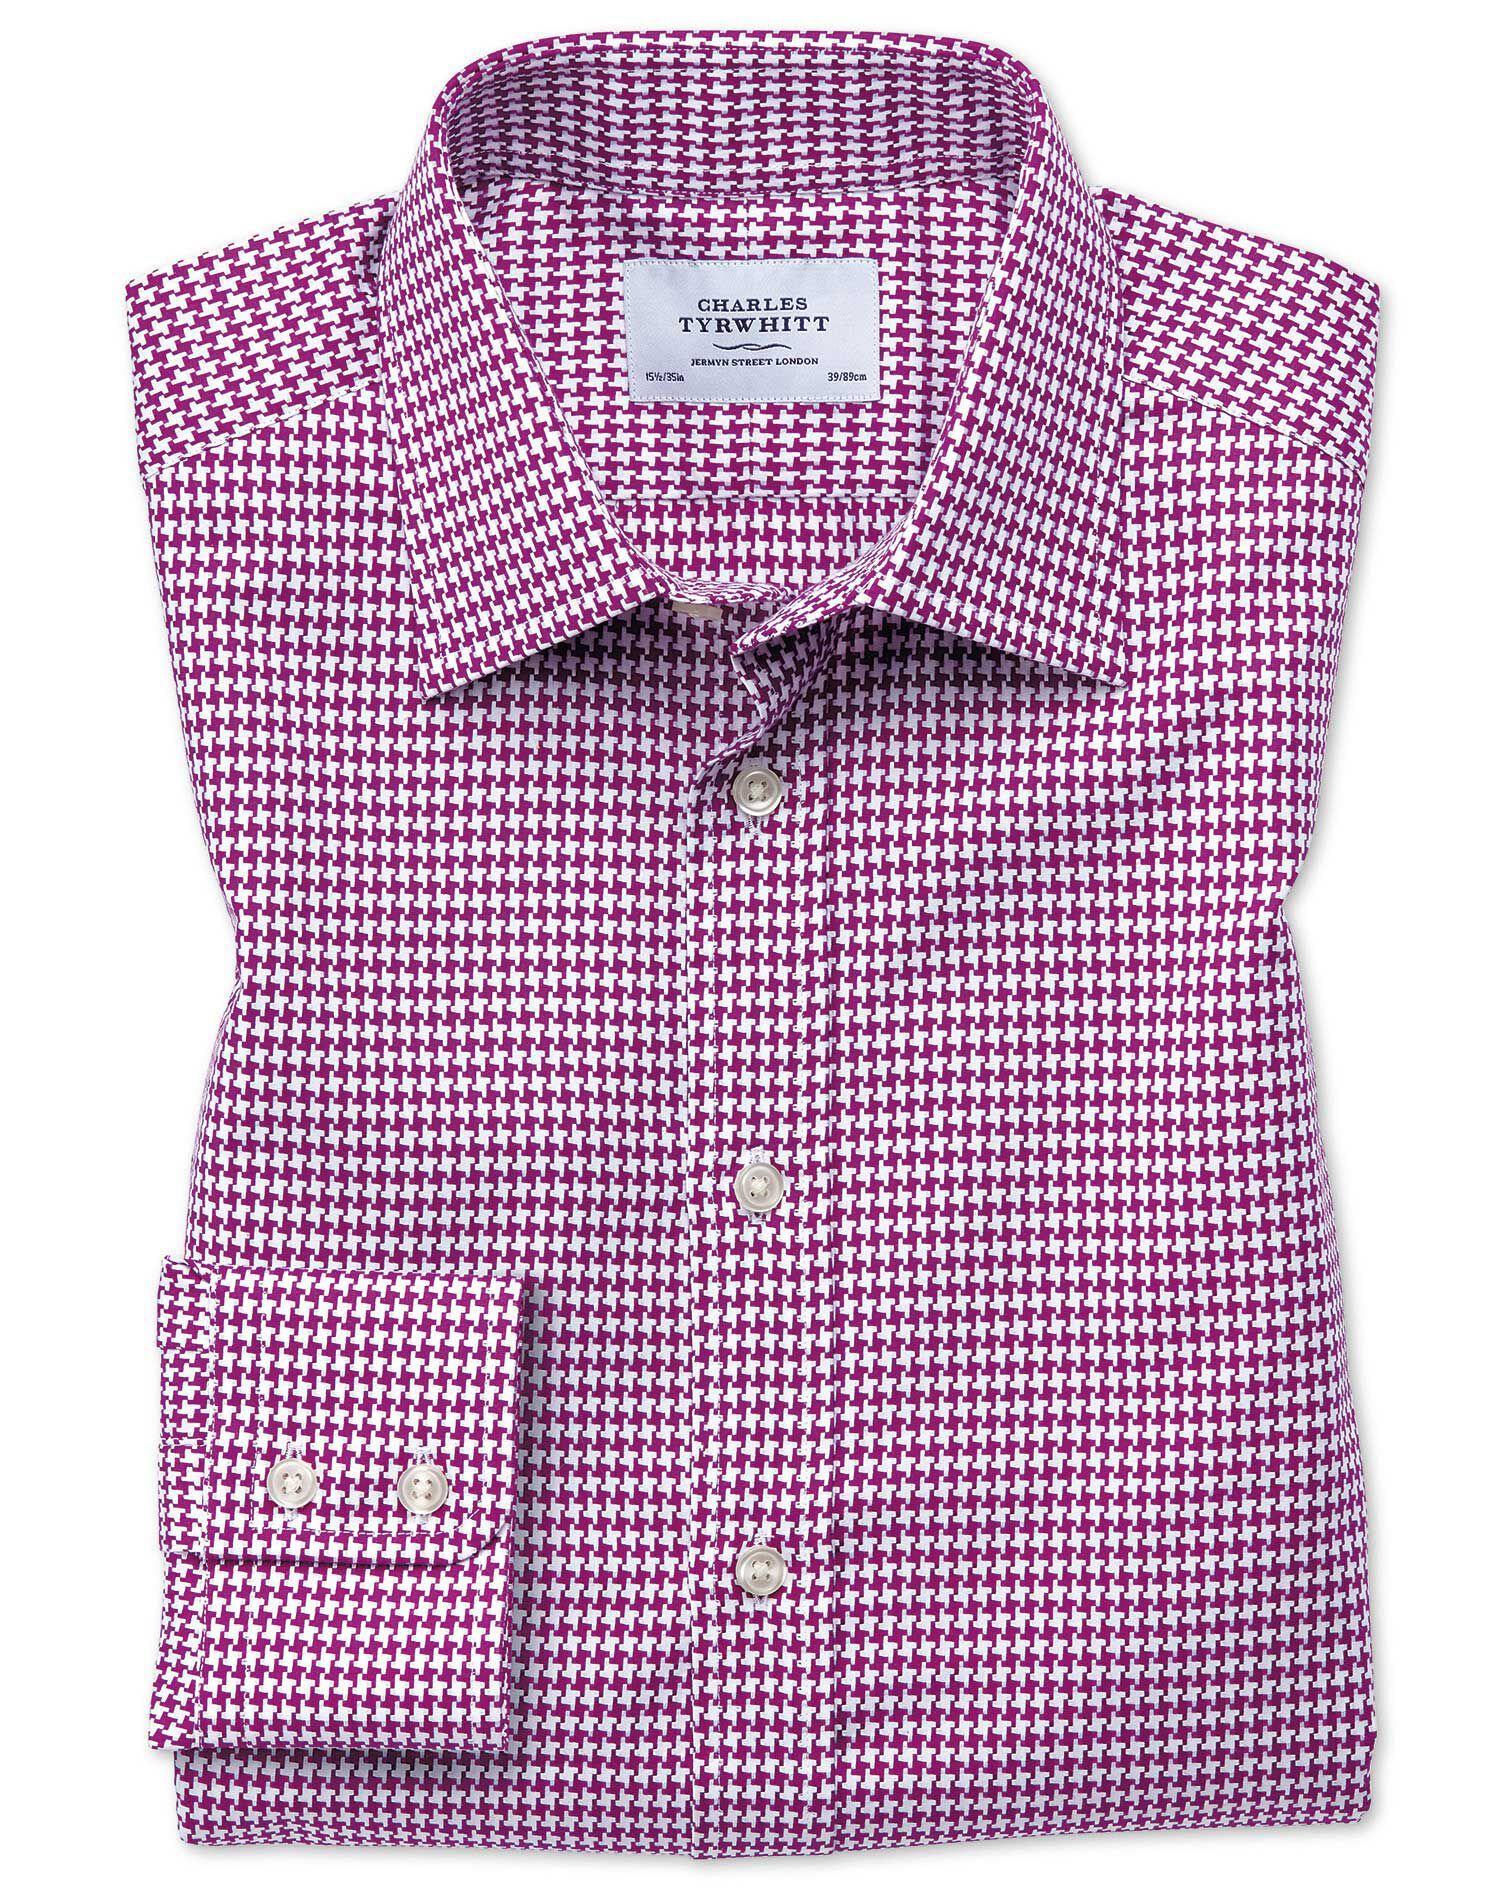 Slim Fit Large Puppytooth Berry Cotton Formal Shirt Single Cuff Size 17.5/34 by Charles Tyrwhitt